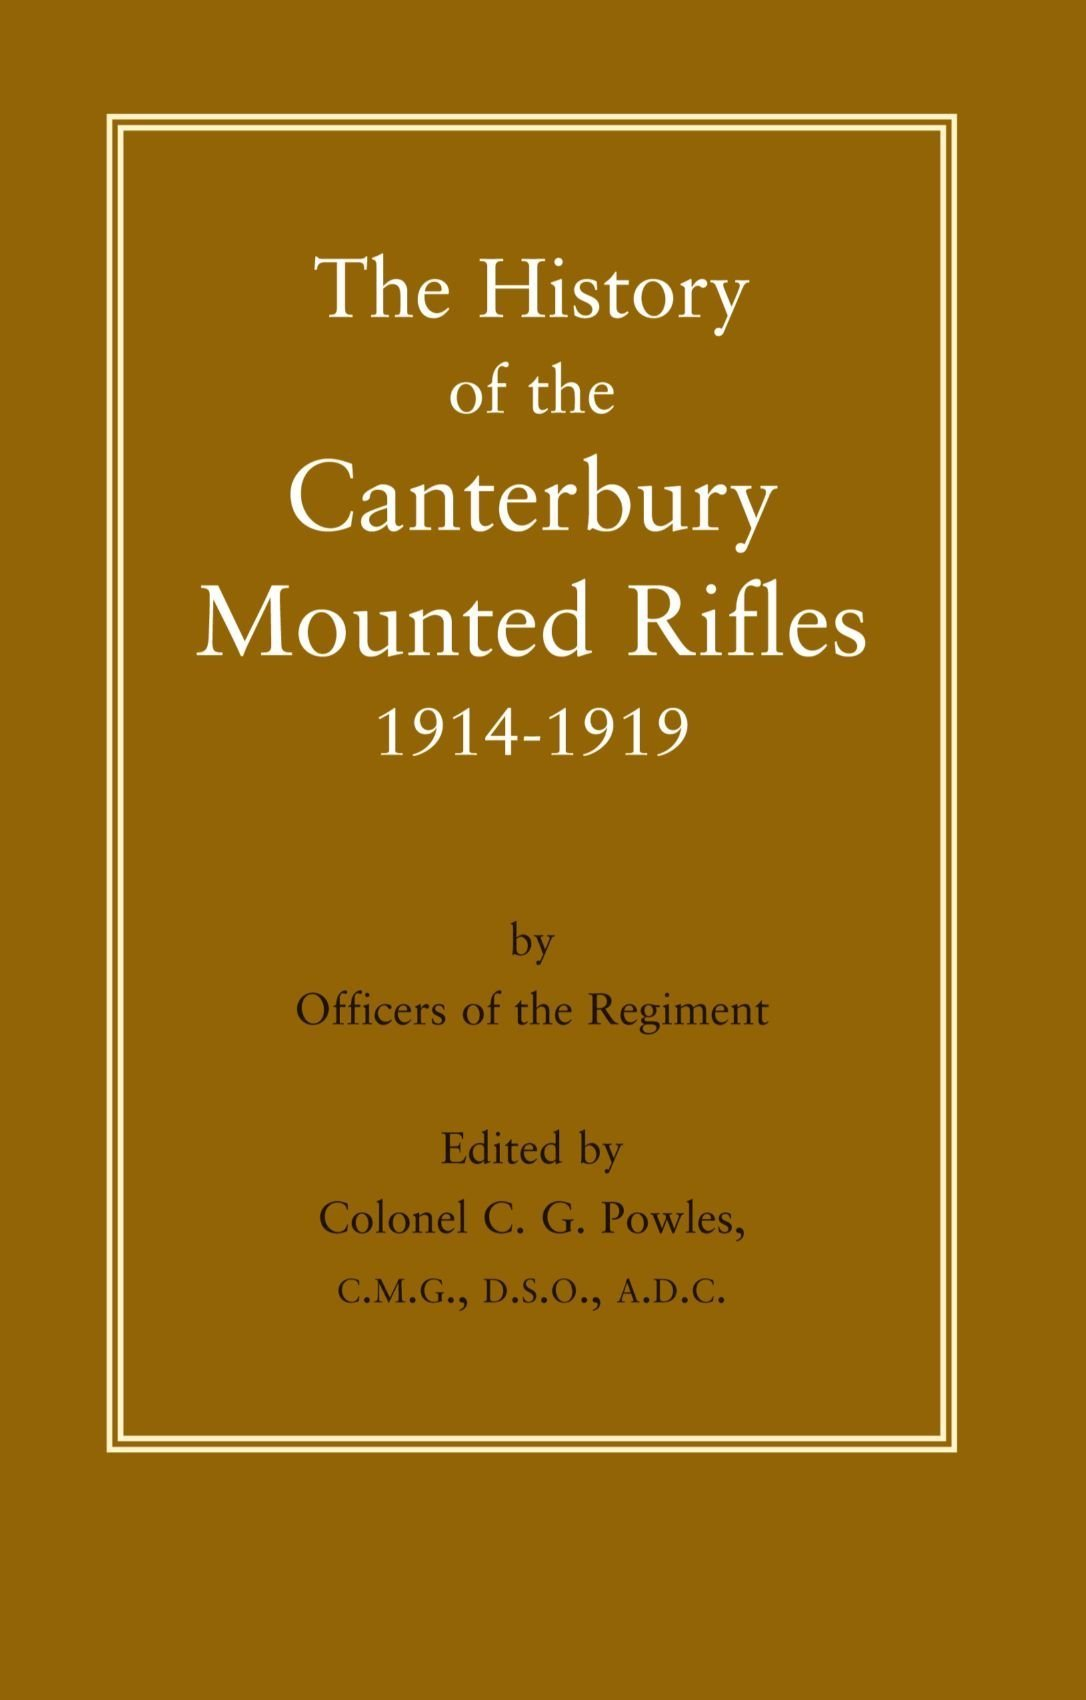 Download The History Of The Canterbury Mounted Rifiles 1914-1919: History Of The Canterbury Mounted Rifles 1914-1919 PDF